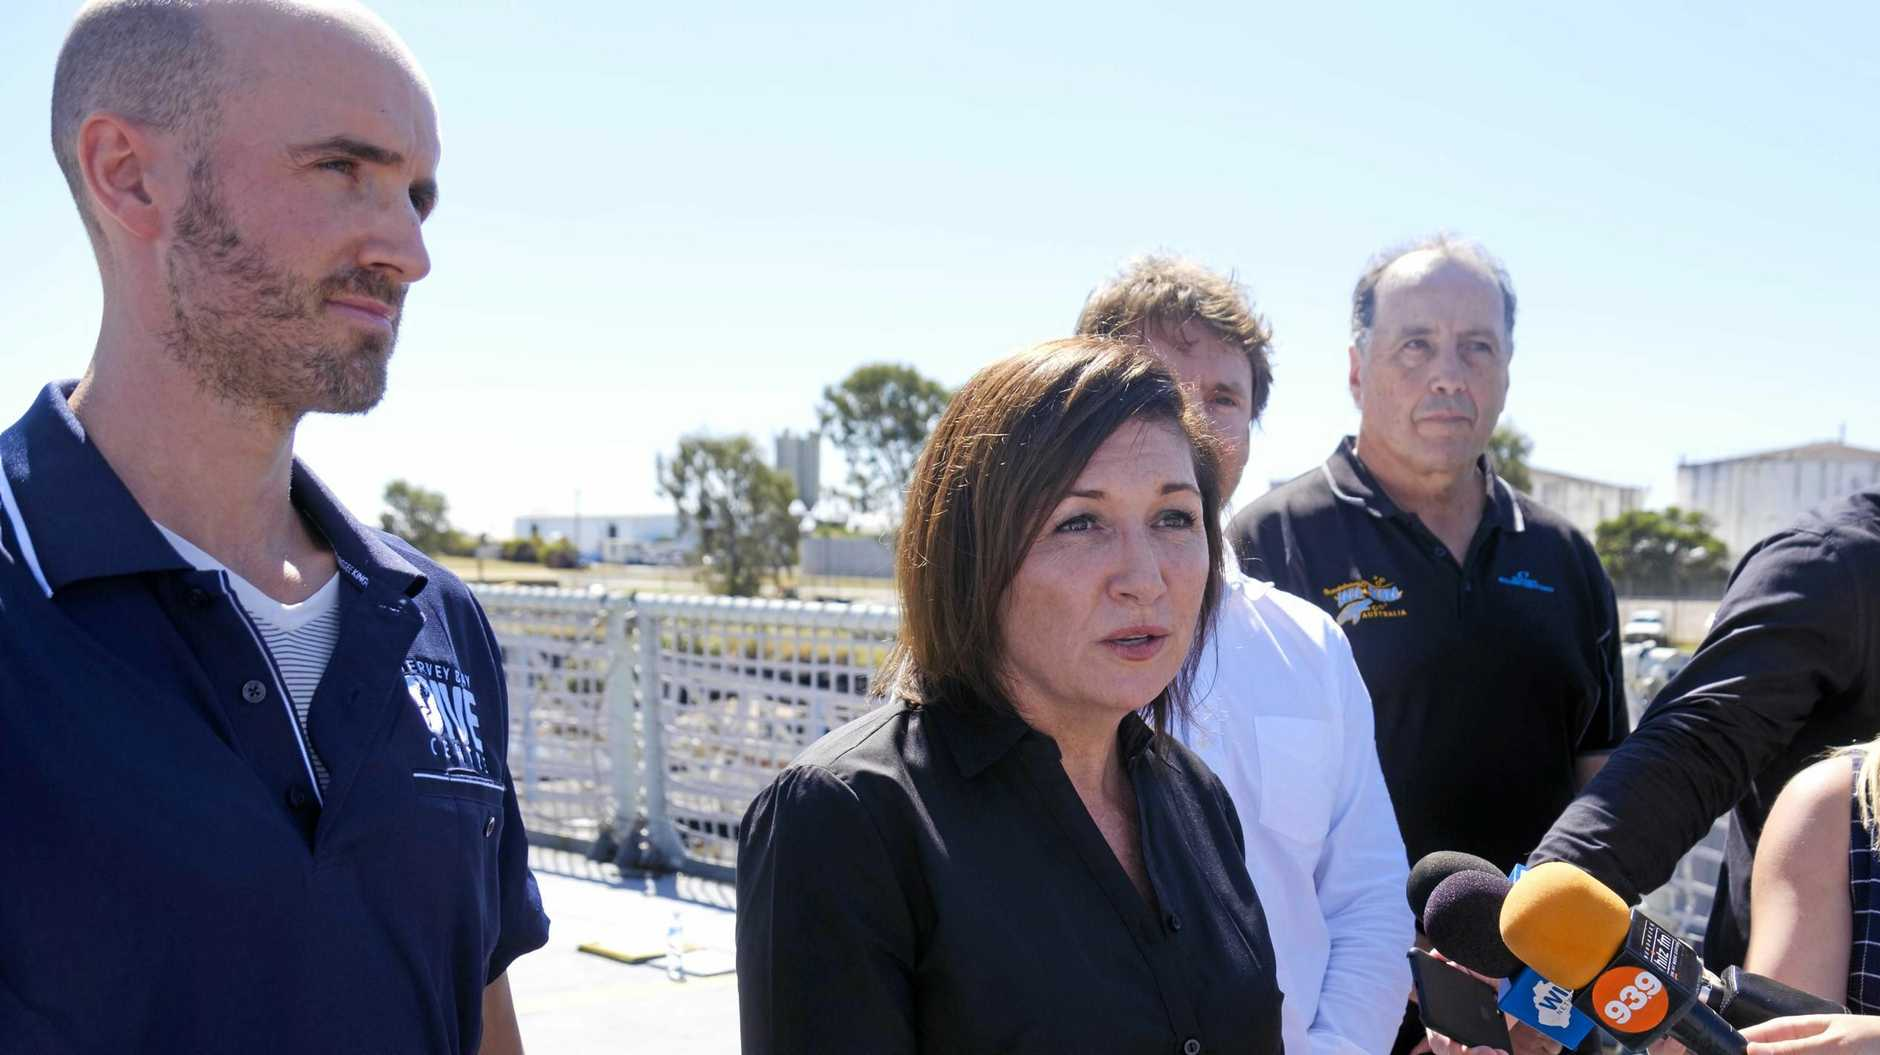 UNACCEPTABLE: State Environment Minister Leeanne Enoch has called for Fraser Coast councillor James Hansen to resign after he made comments on social media about her race and skin colour.